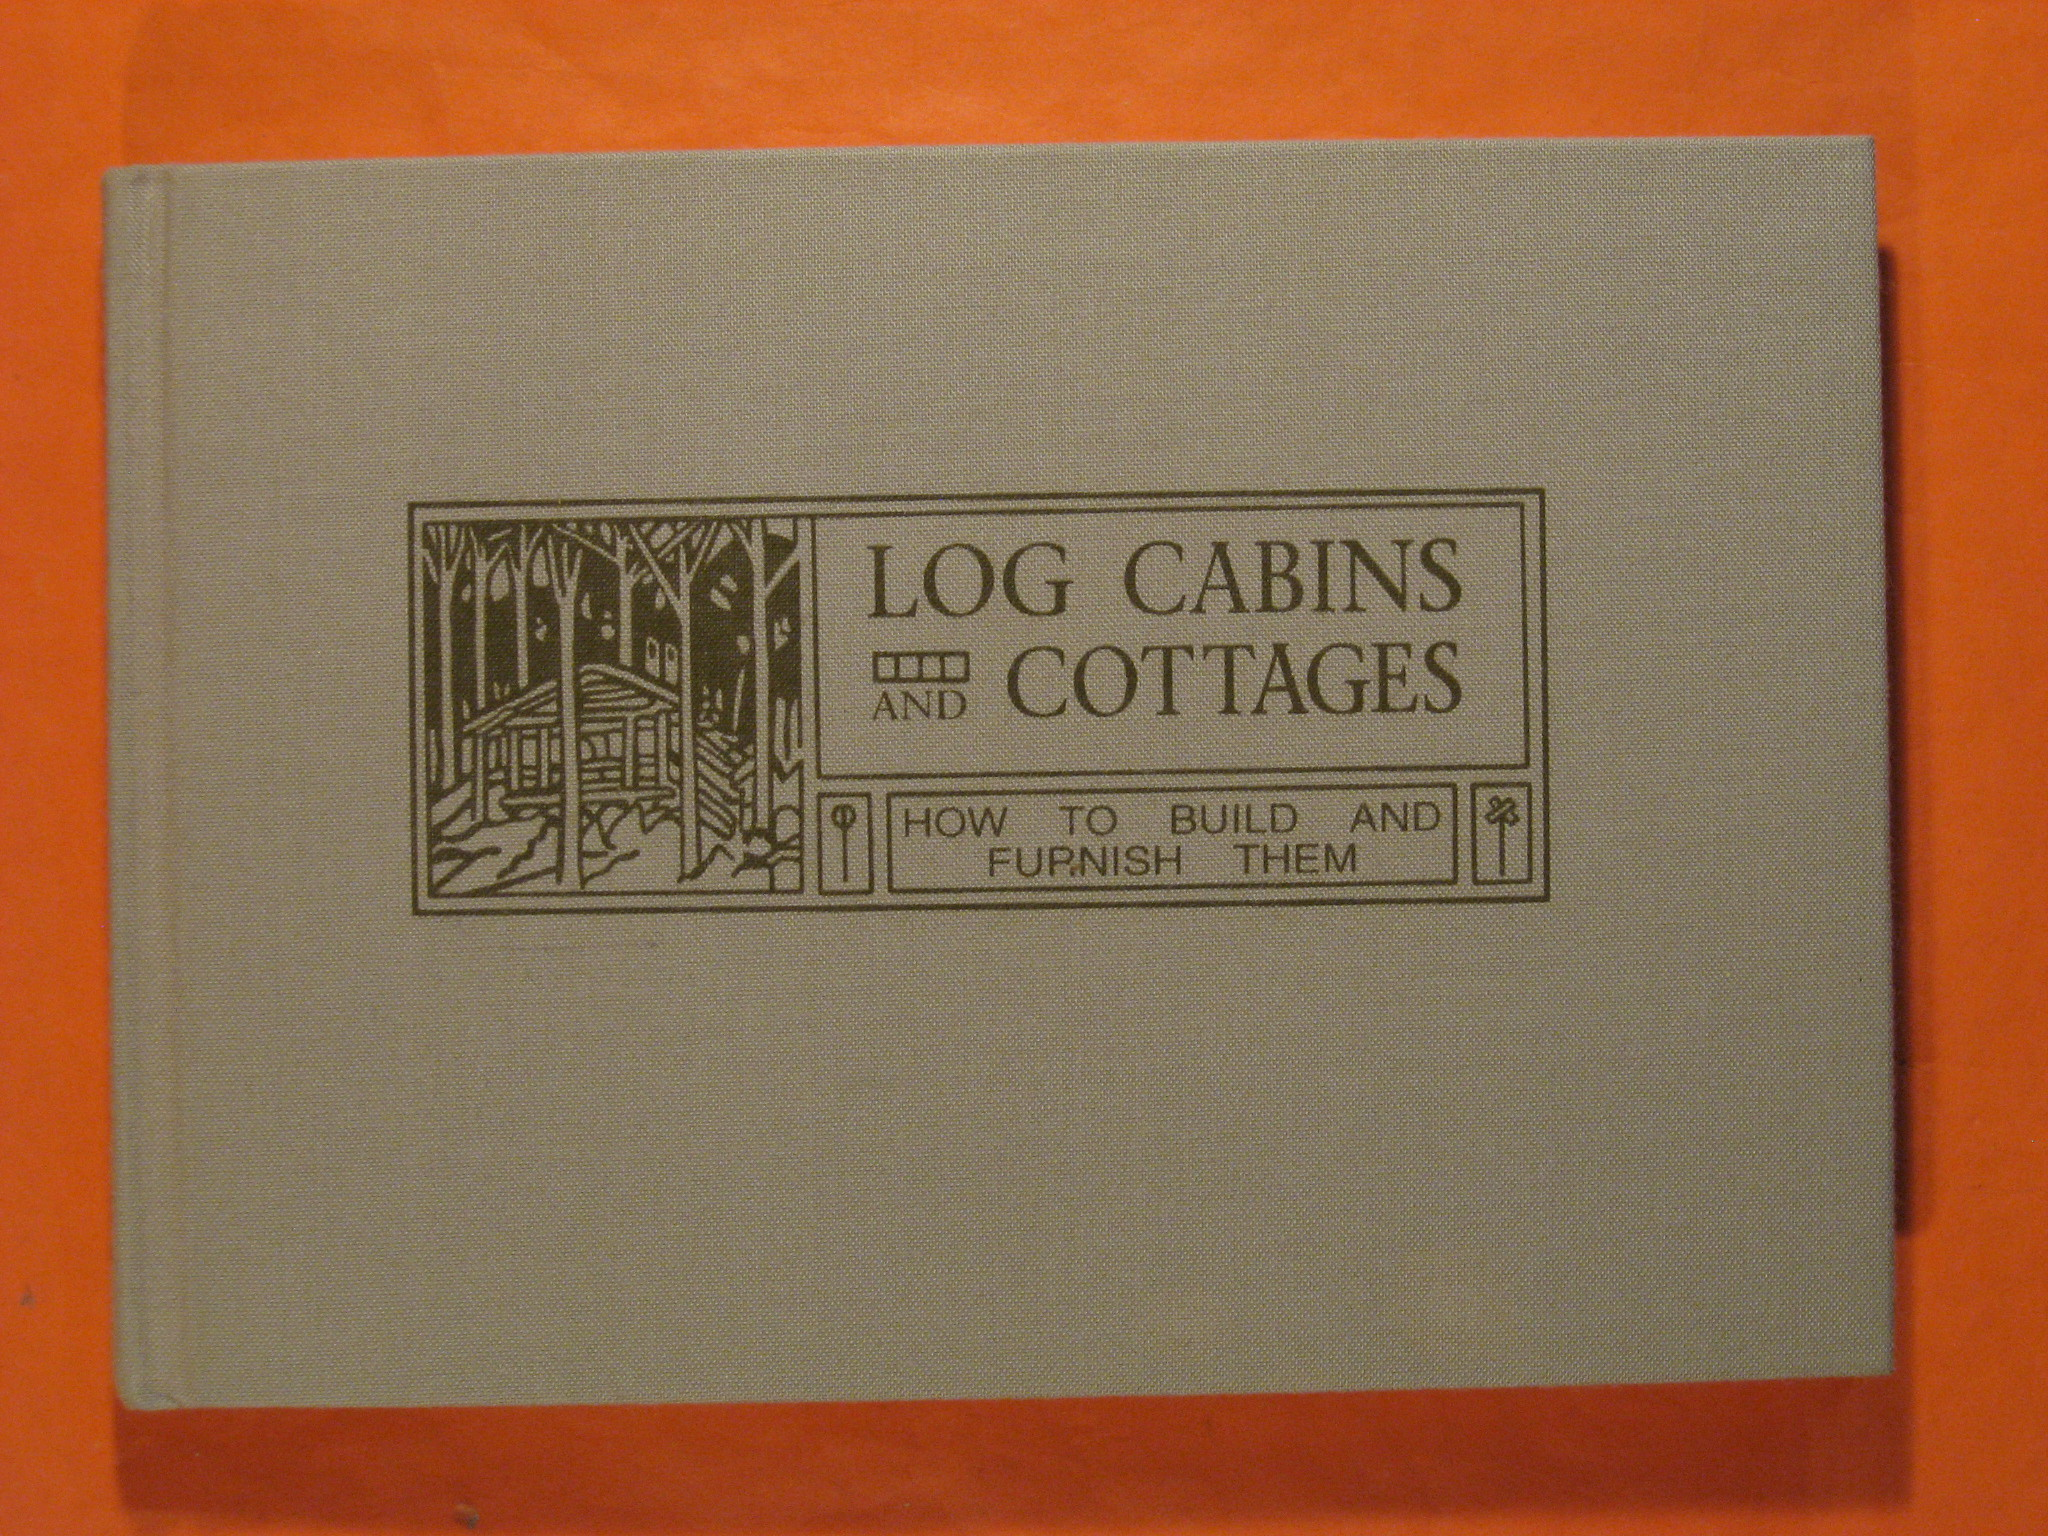 Log Cabins and Cottages:  How to Build an Furnish Them, Wicks, William S.